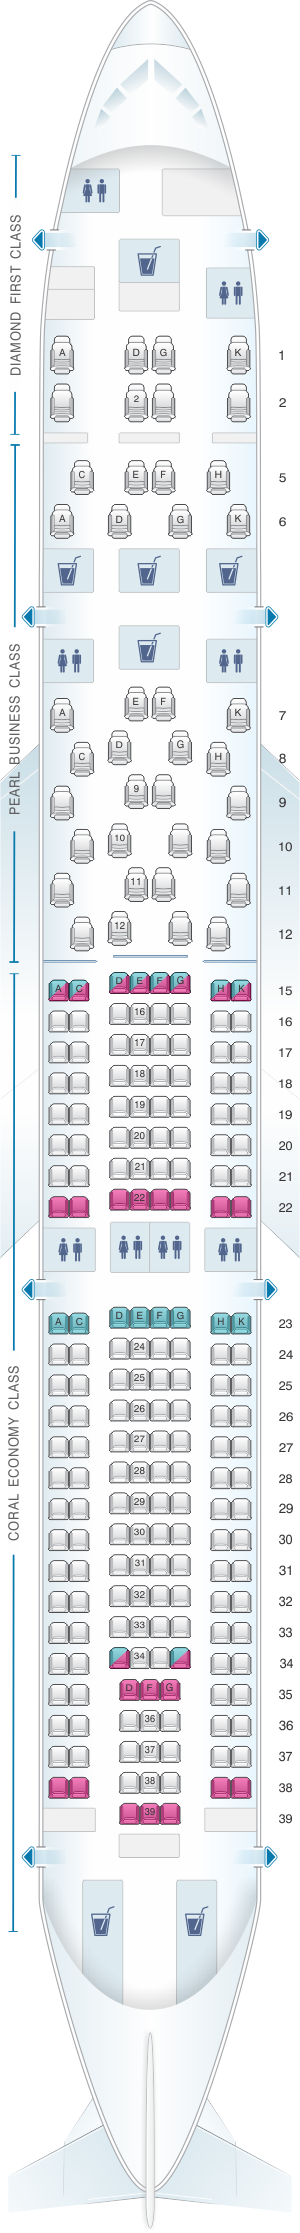 Seat map for Etihad Airways Airbus A330 300